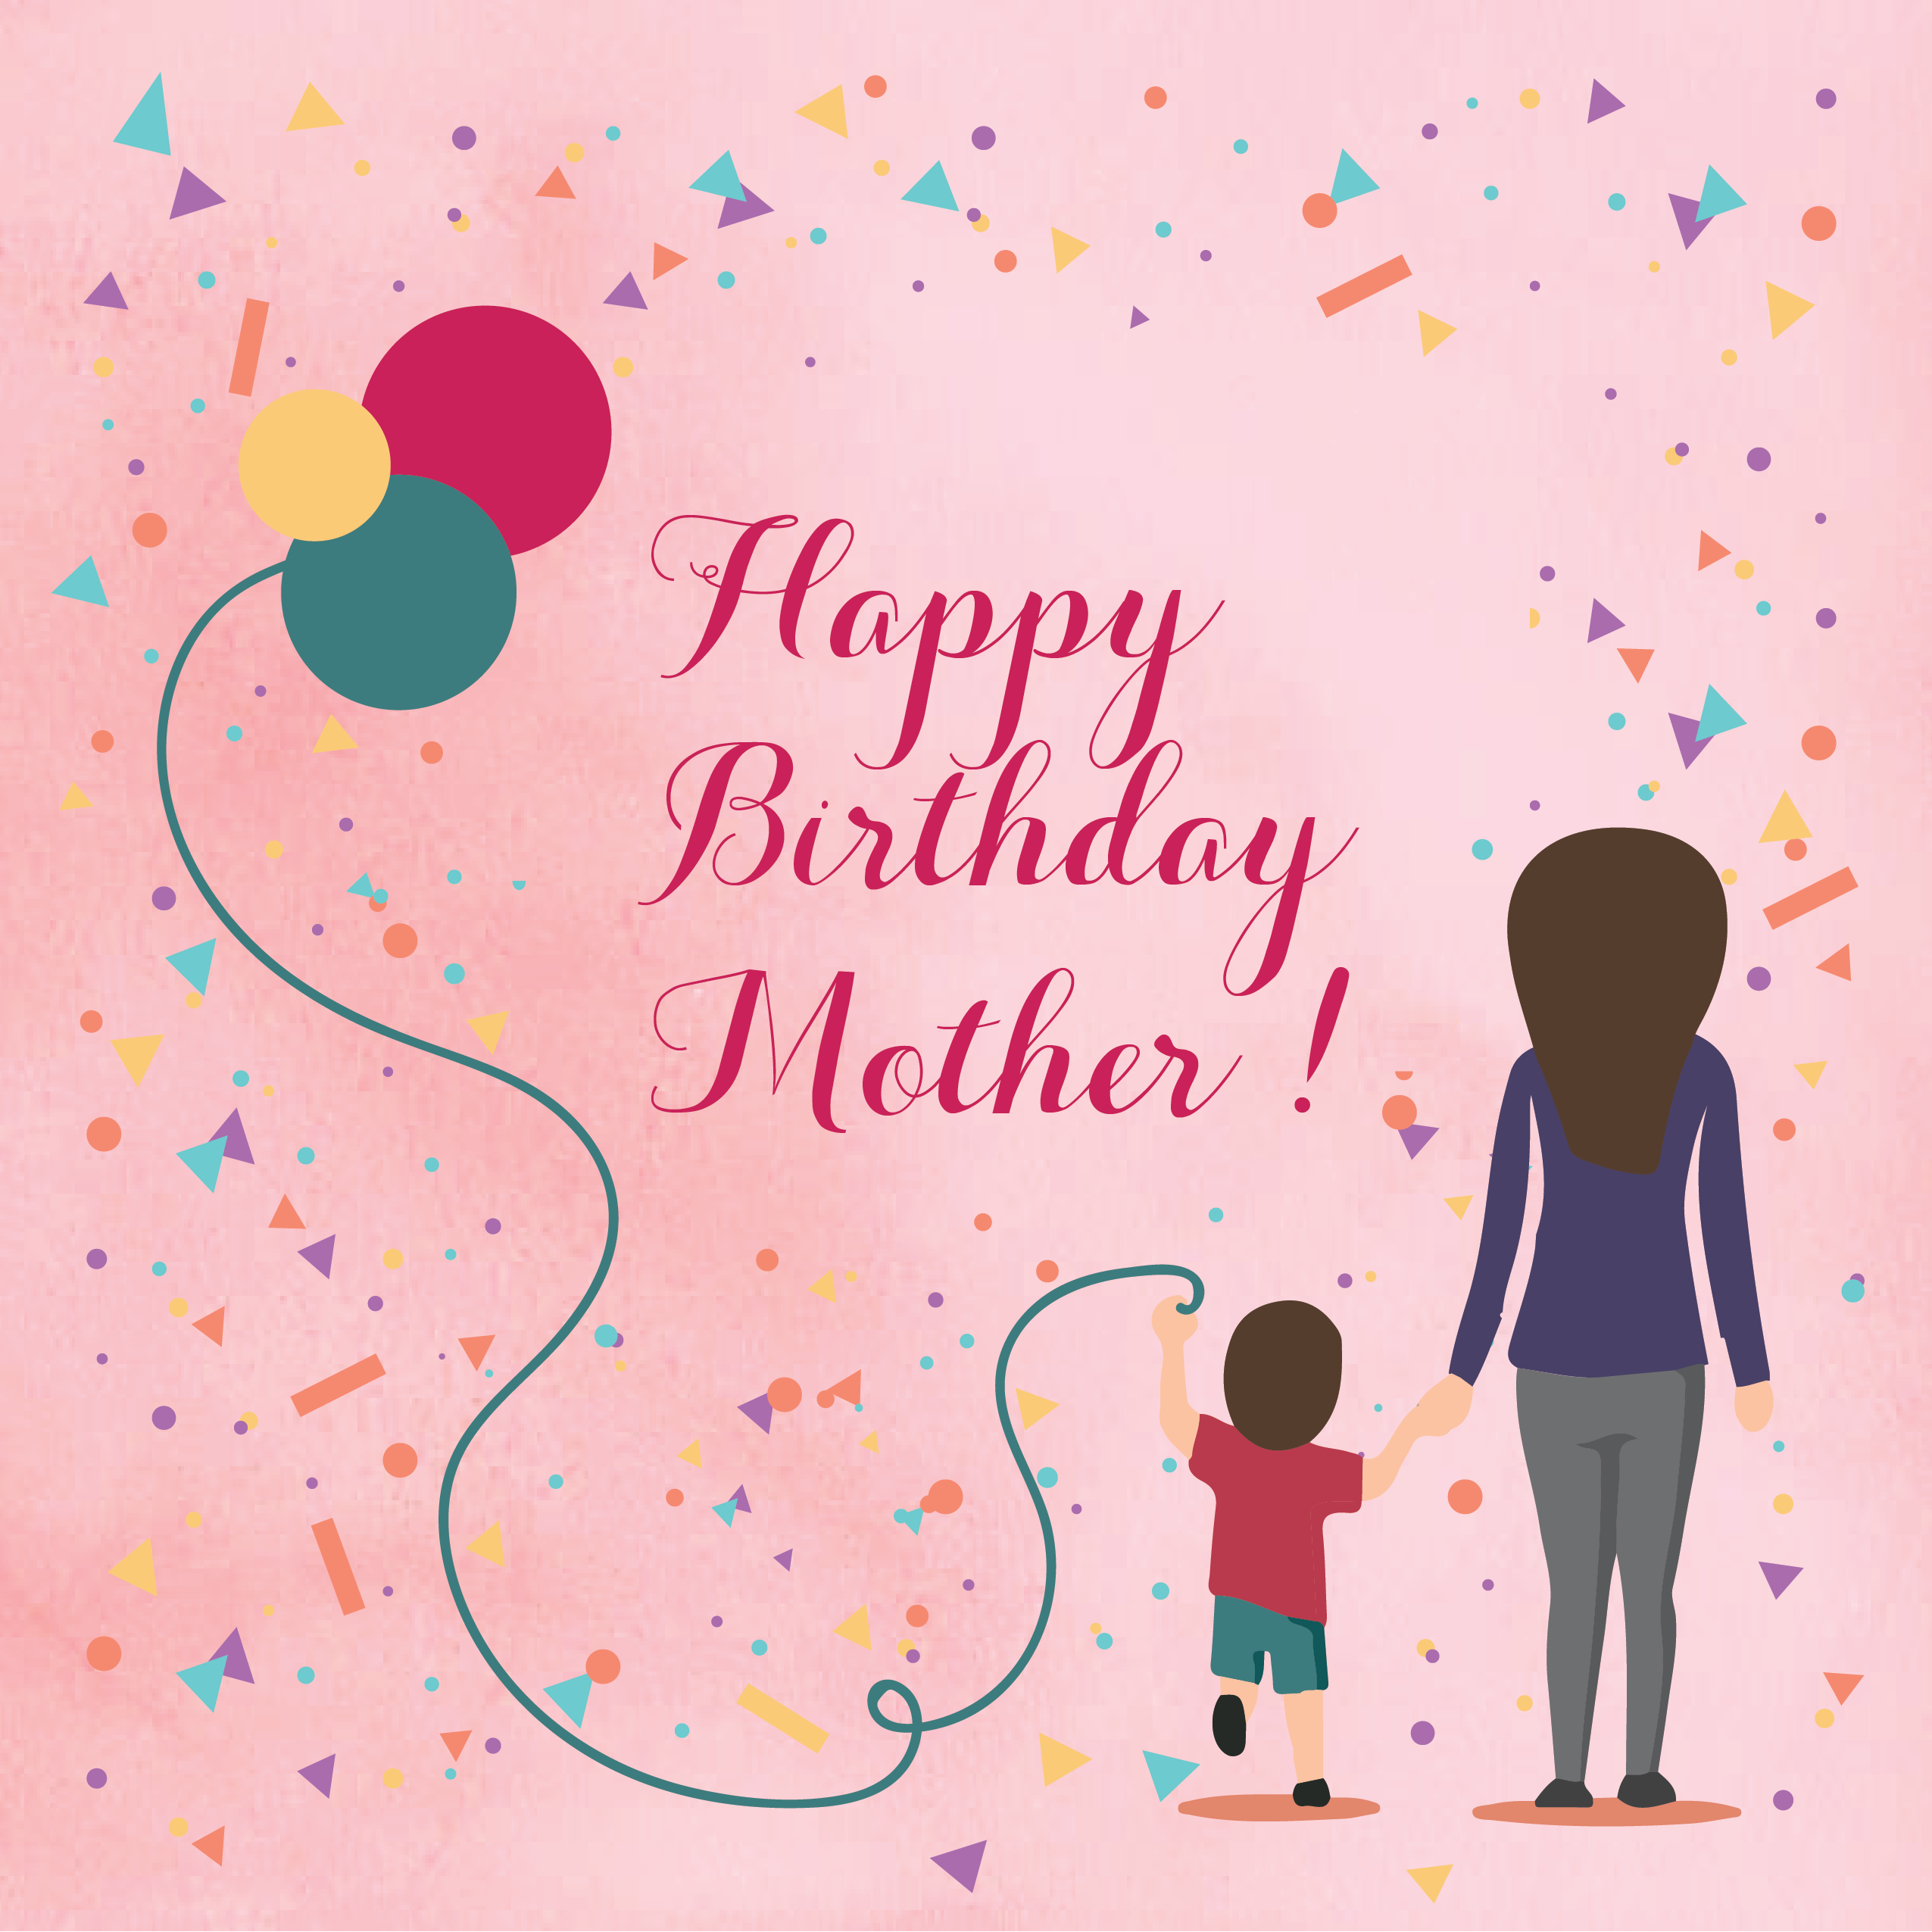 Phenomenal Best 20 Happy Birthday Wishes For Mother Welcome Wishes Personalised Birthday Cards Paralily Jamesorg